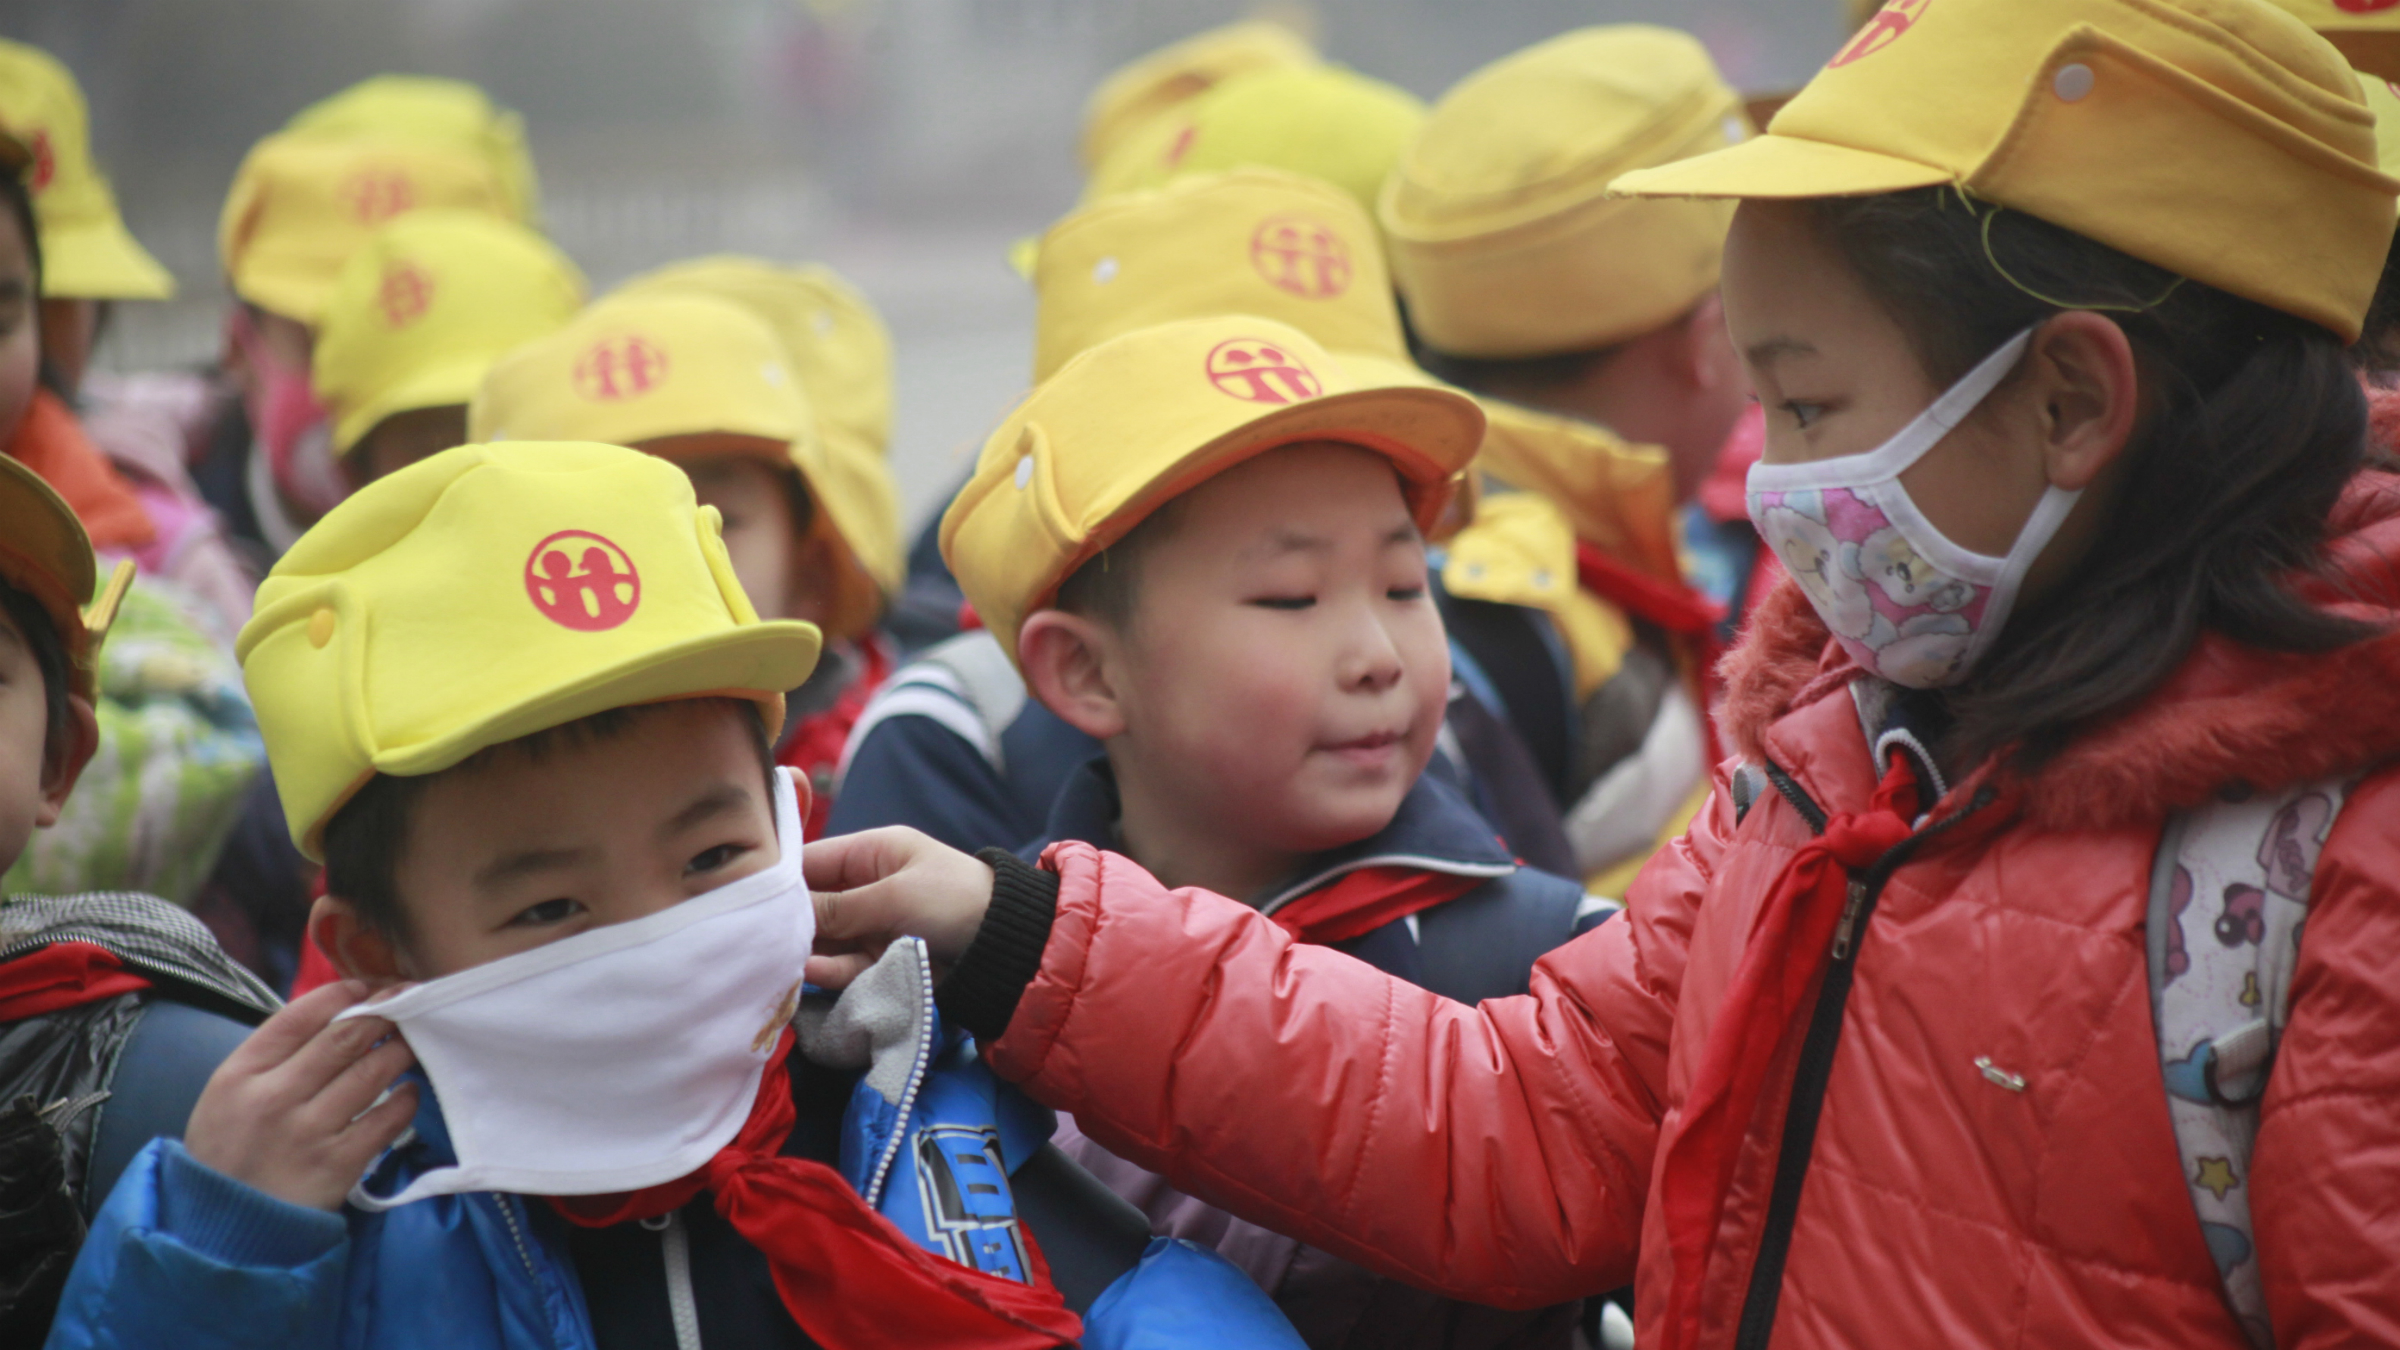 Pupils wearing face masks to protect heavy smog in Jinan city, east Chinas Shandong province, 14 January 2013. Apple Inc., JPMorgan Chase & Co., Toyota Motor Corp. and Honda Motor Co. gave employees face masks, offered health tips and added office plants as pollution in Beijing hit hazardous levels for a 19th day this month. Beijings city government recommended that its 20 million residents stay indoors for a second day as the local environmental monitoring center gave todays (30 January 2013) air quality the worst rating on its six-level scale. A U.S. Embassy pollution monitor showed air quality in the Chinese capital reached hazardous levels for a fifth consecutive day. Companies across Beijing have sought to protect the health of their current employees while facing the prospect of increasing difficulties in attracting others to a city grappling with pollution levels.(Imaginechina via AP Images